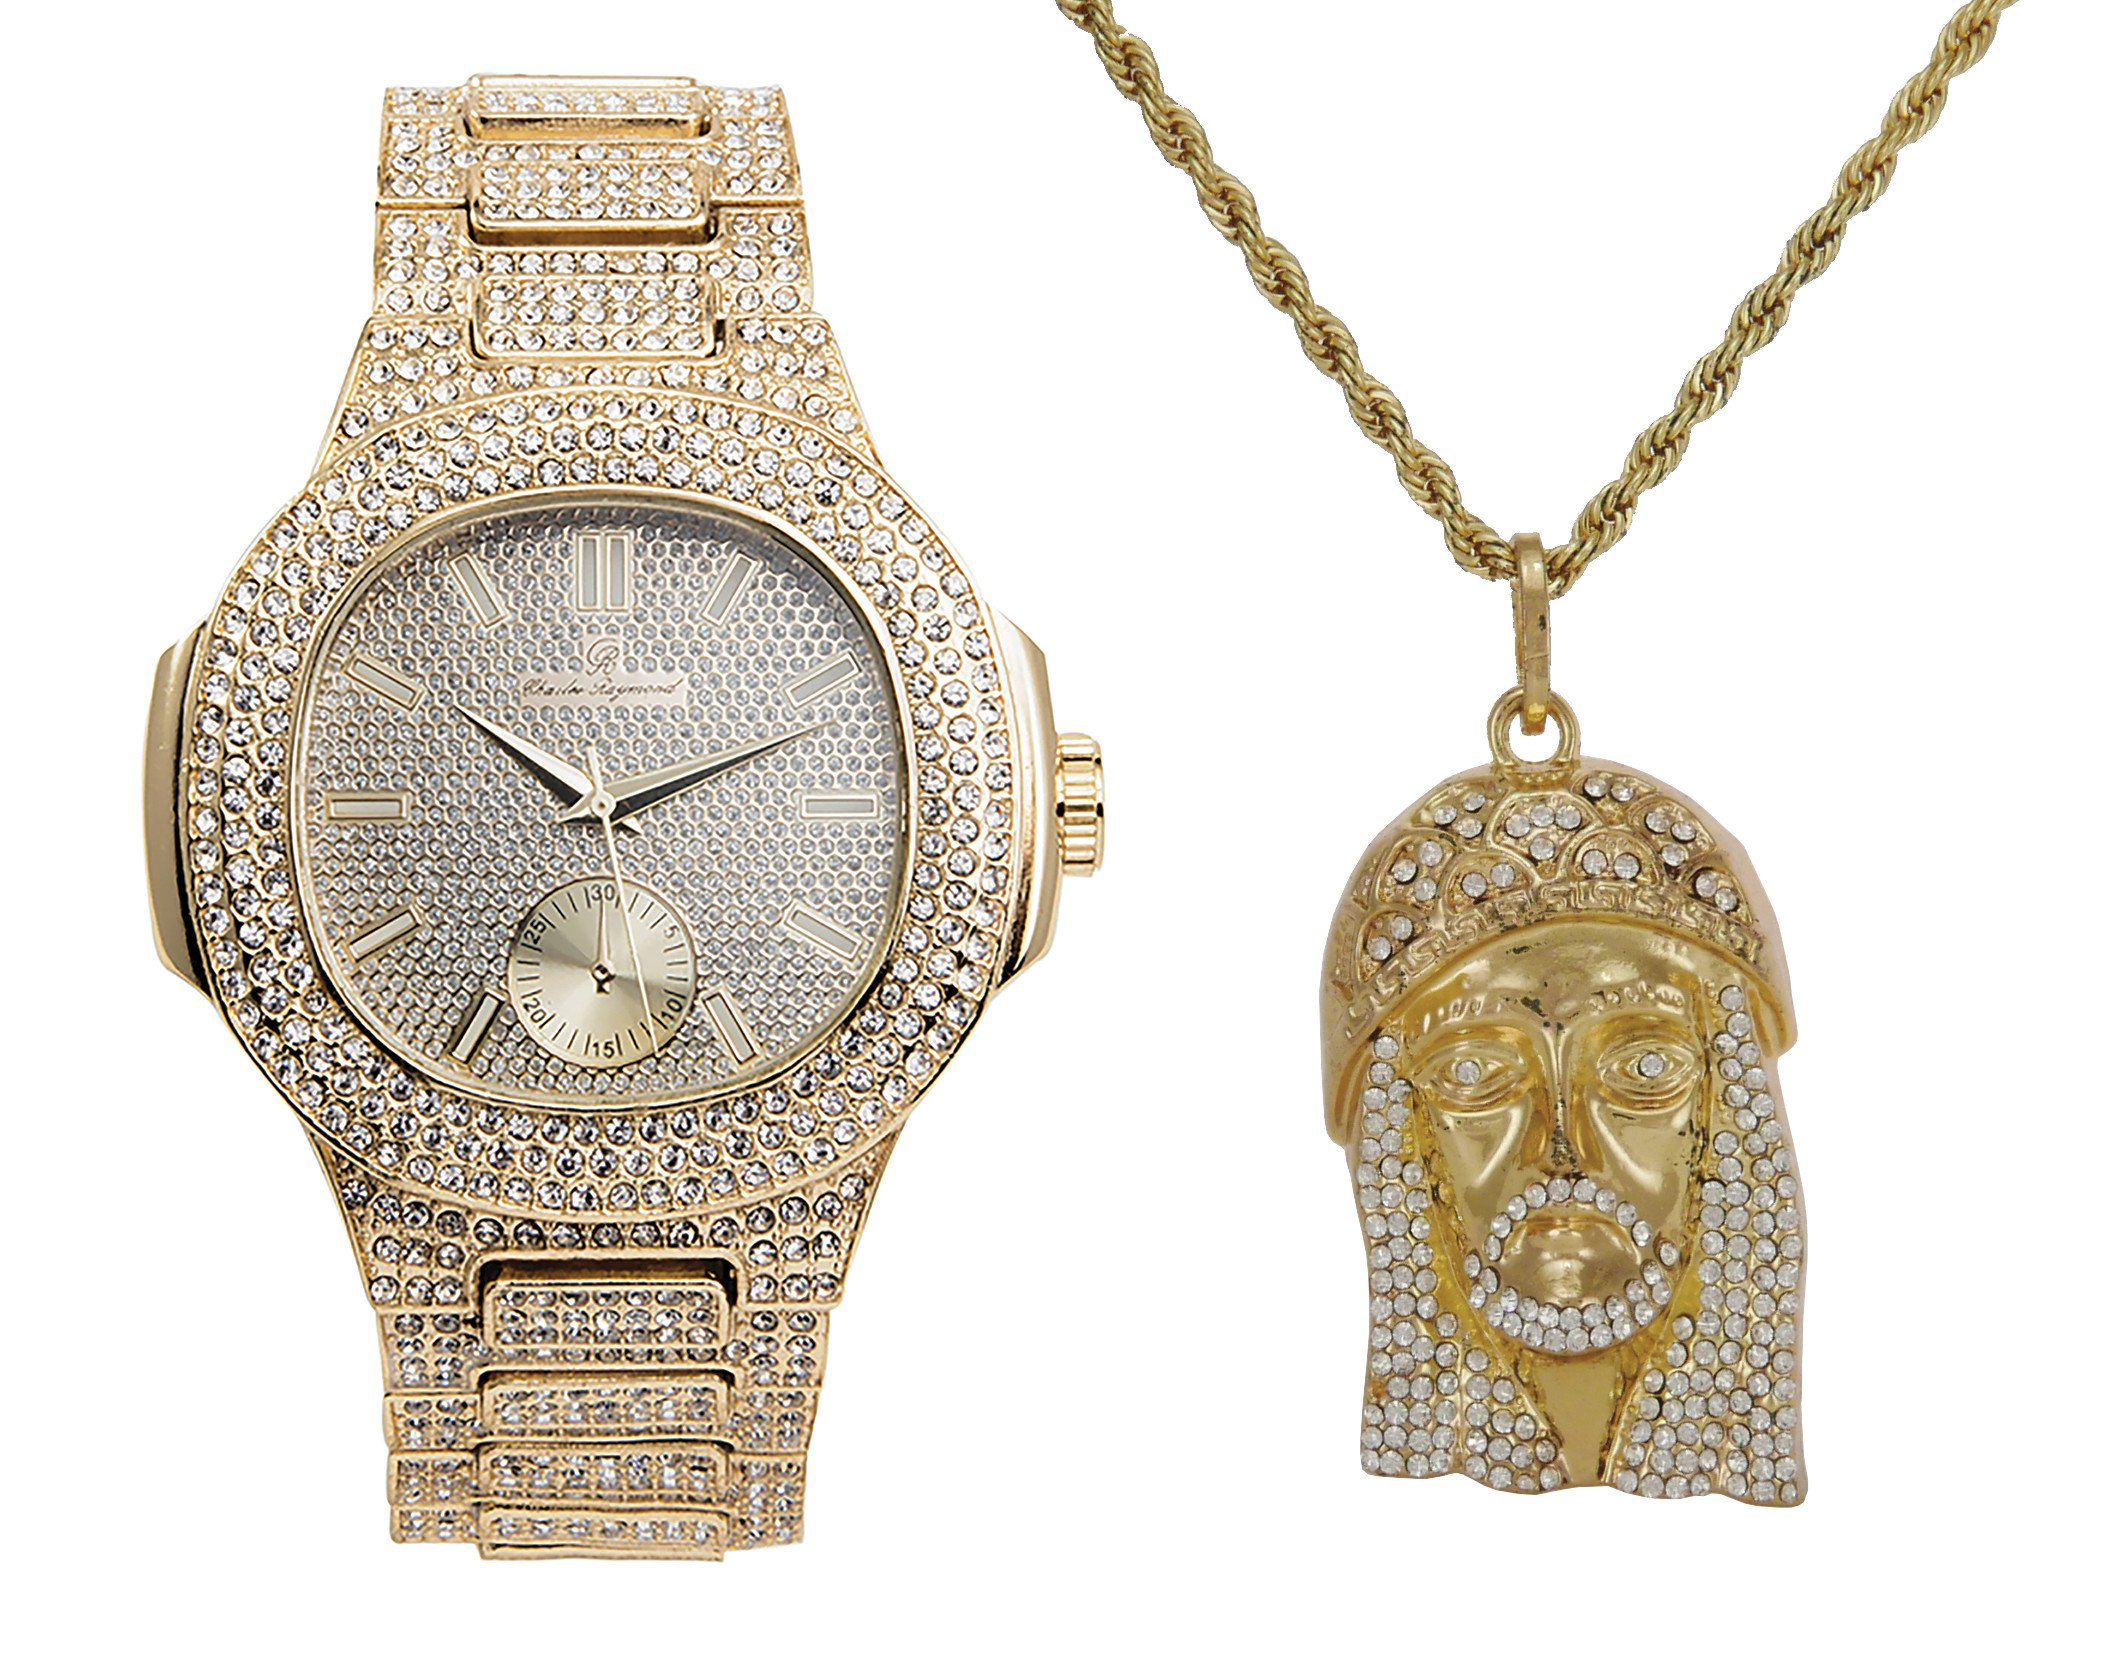 Iced out Bling Watch and 3D Iced Out Jesus Pendent Necklace Set - 8475Jesus Gold